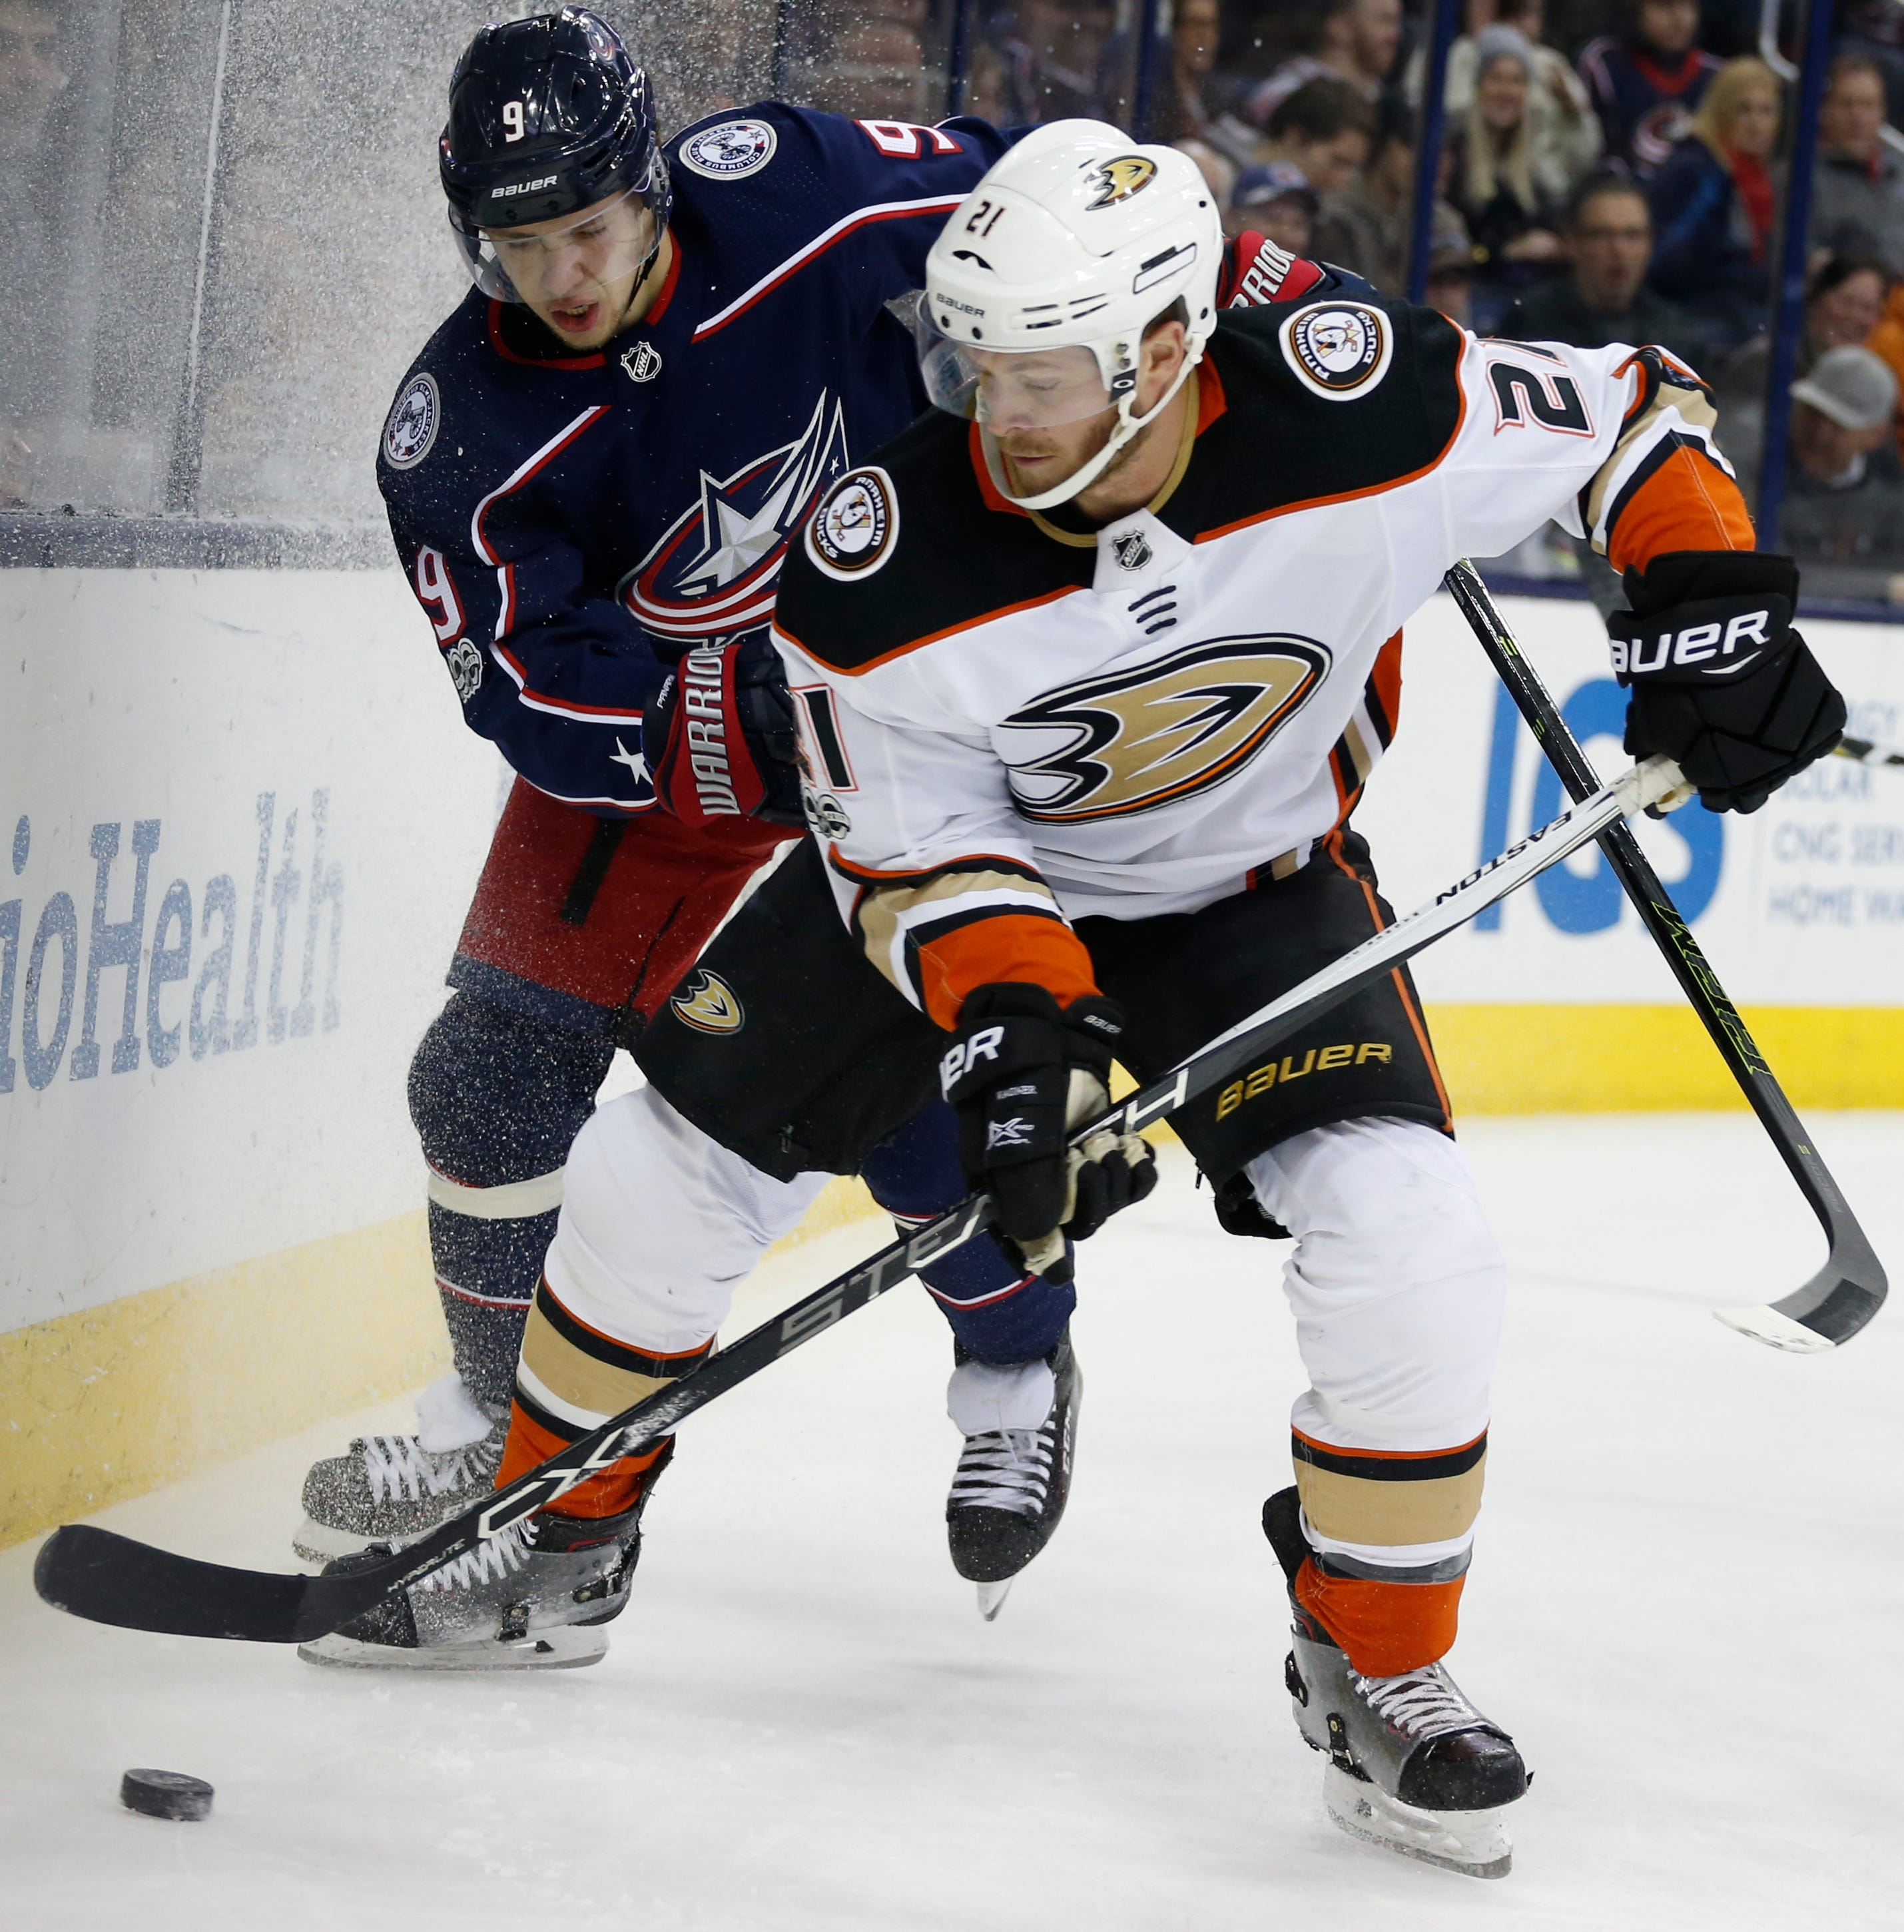 Anderson scores late in 3rd to lift Jackets over Ducks 4-2